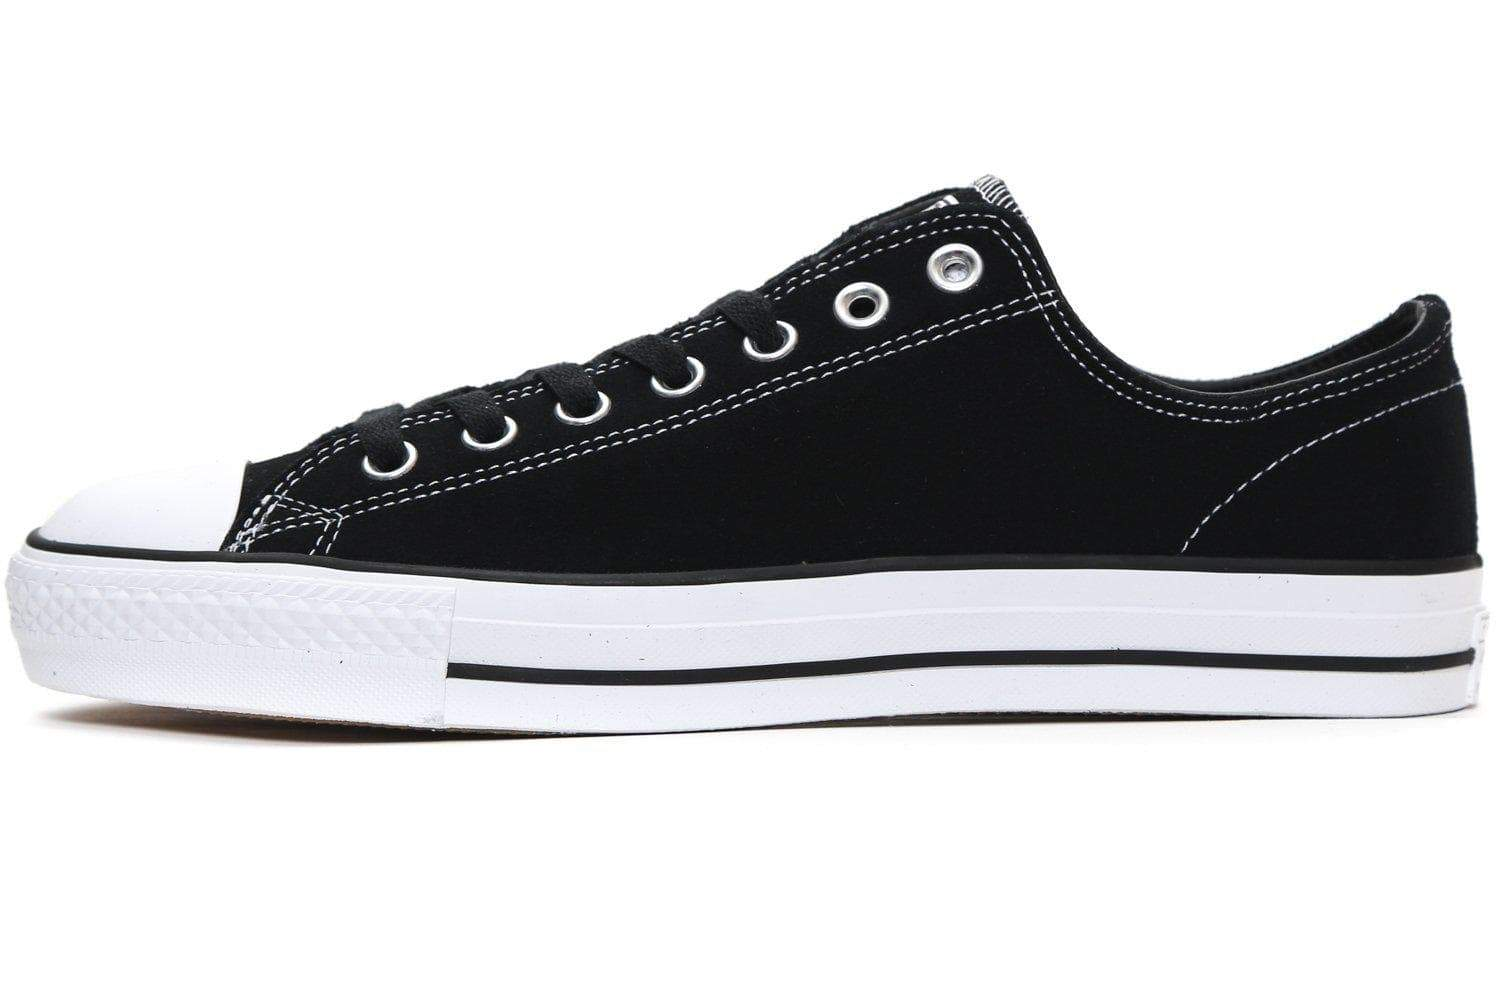 5dc8729f6b1807 Converse ctas pro skate shoe afterpay available trainers skateboarding jpg  1500x1000 Converse skate suede